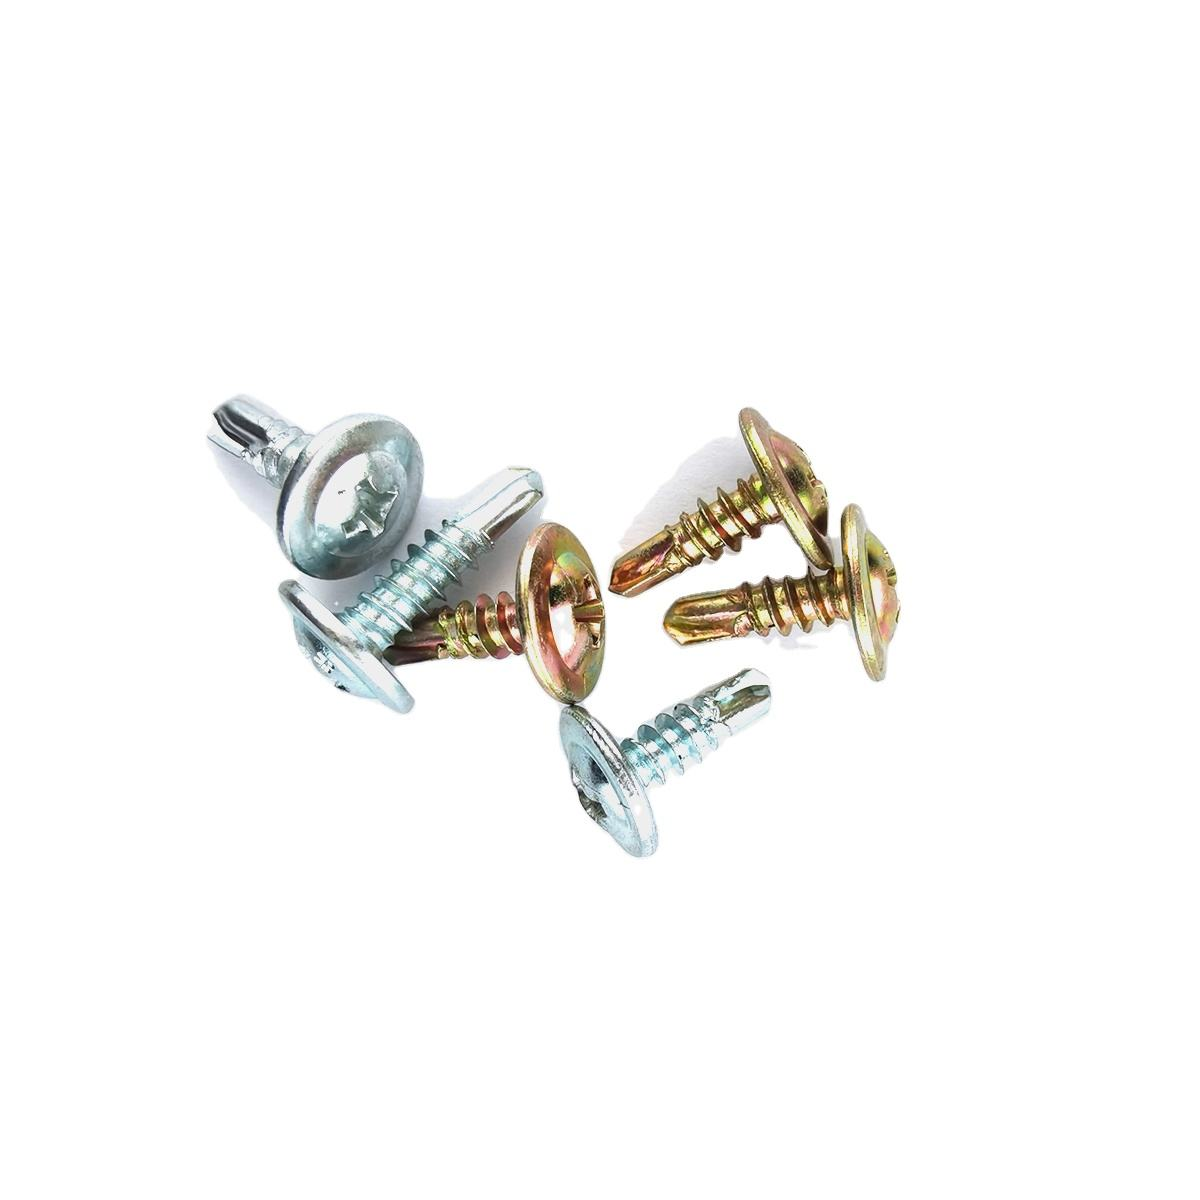 Tianjin China Manufacturer Price Hot Sale Truss Head Self-drilling Screws for decoration